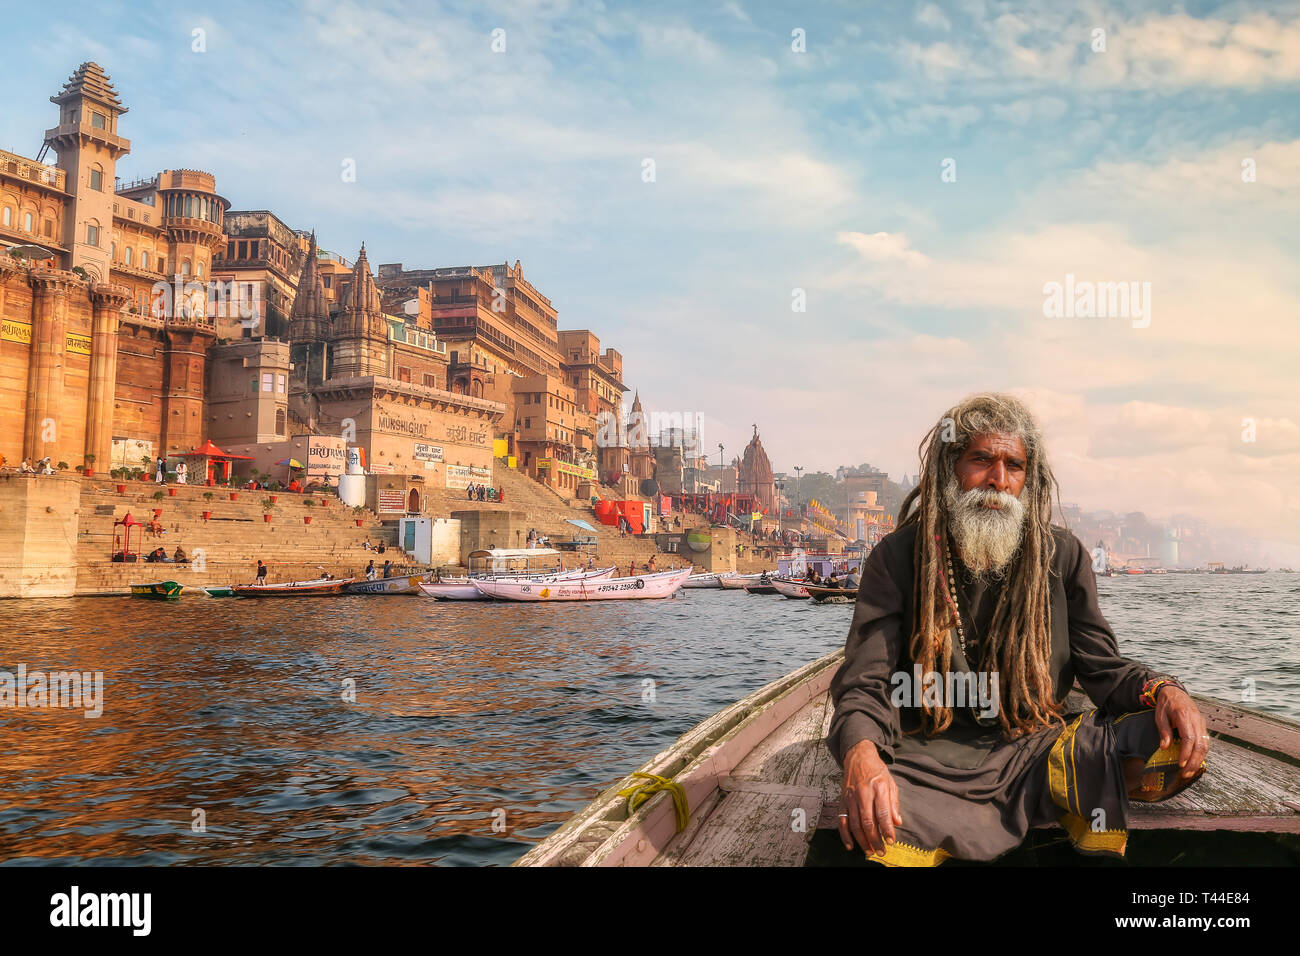 Sadhu baba on a wooden boat overlooking the historic Varanasi city and Ganges river ghats, India. - Stock Image